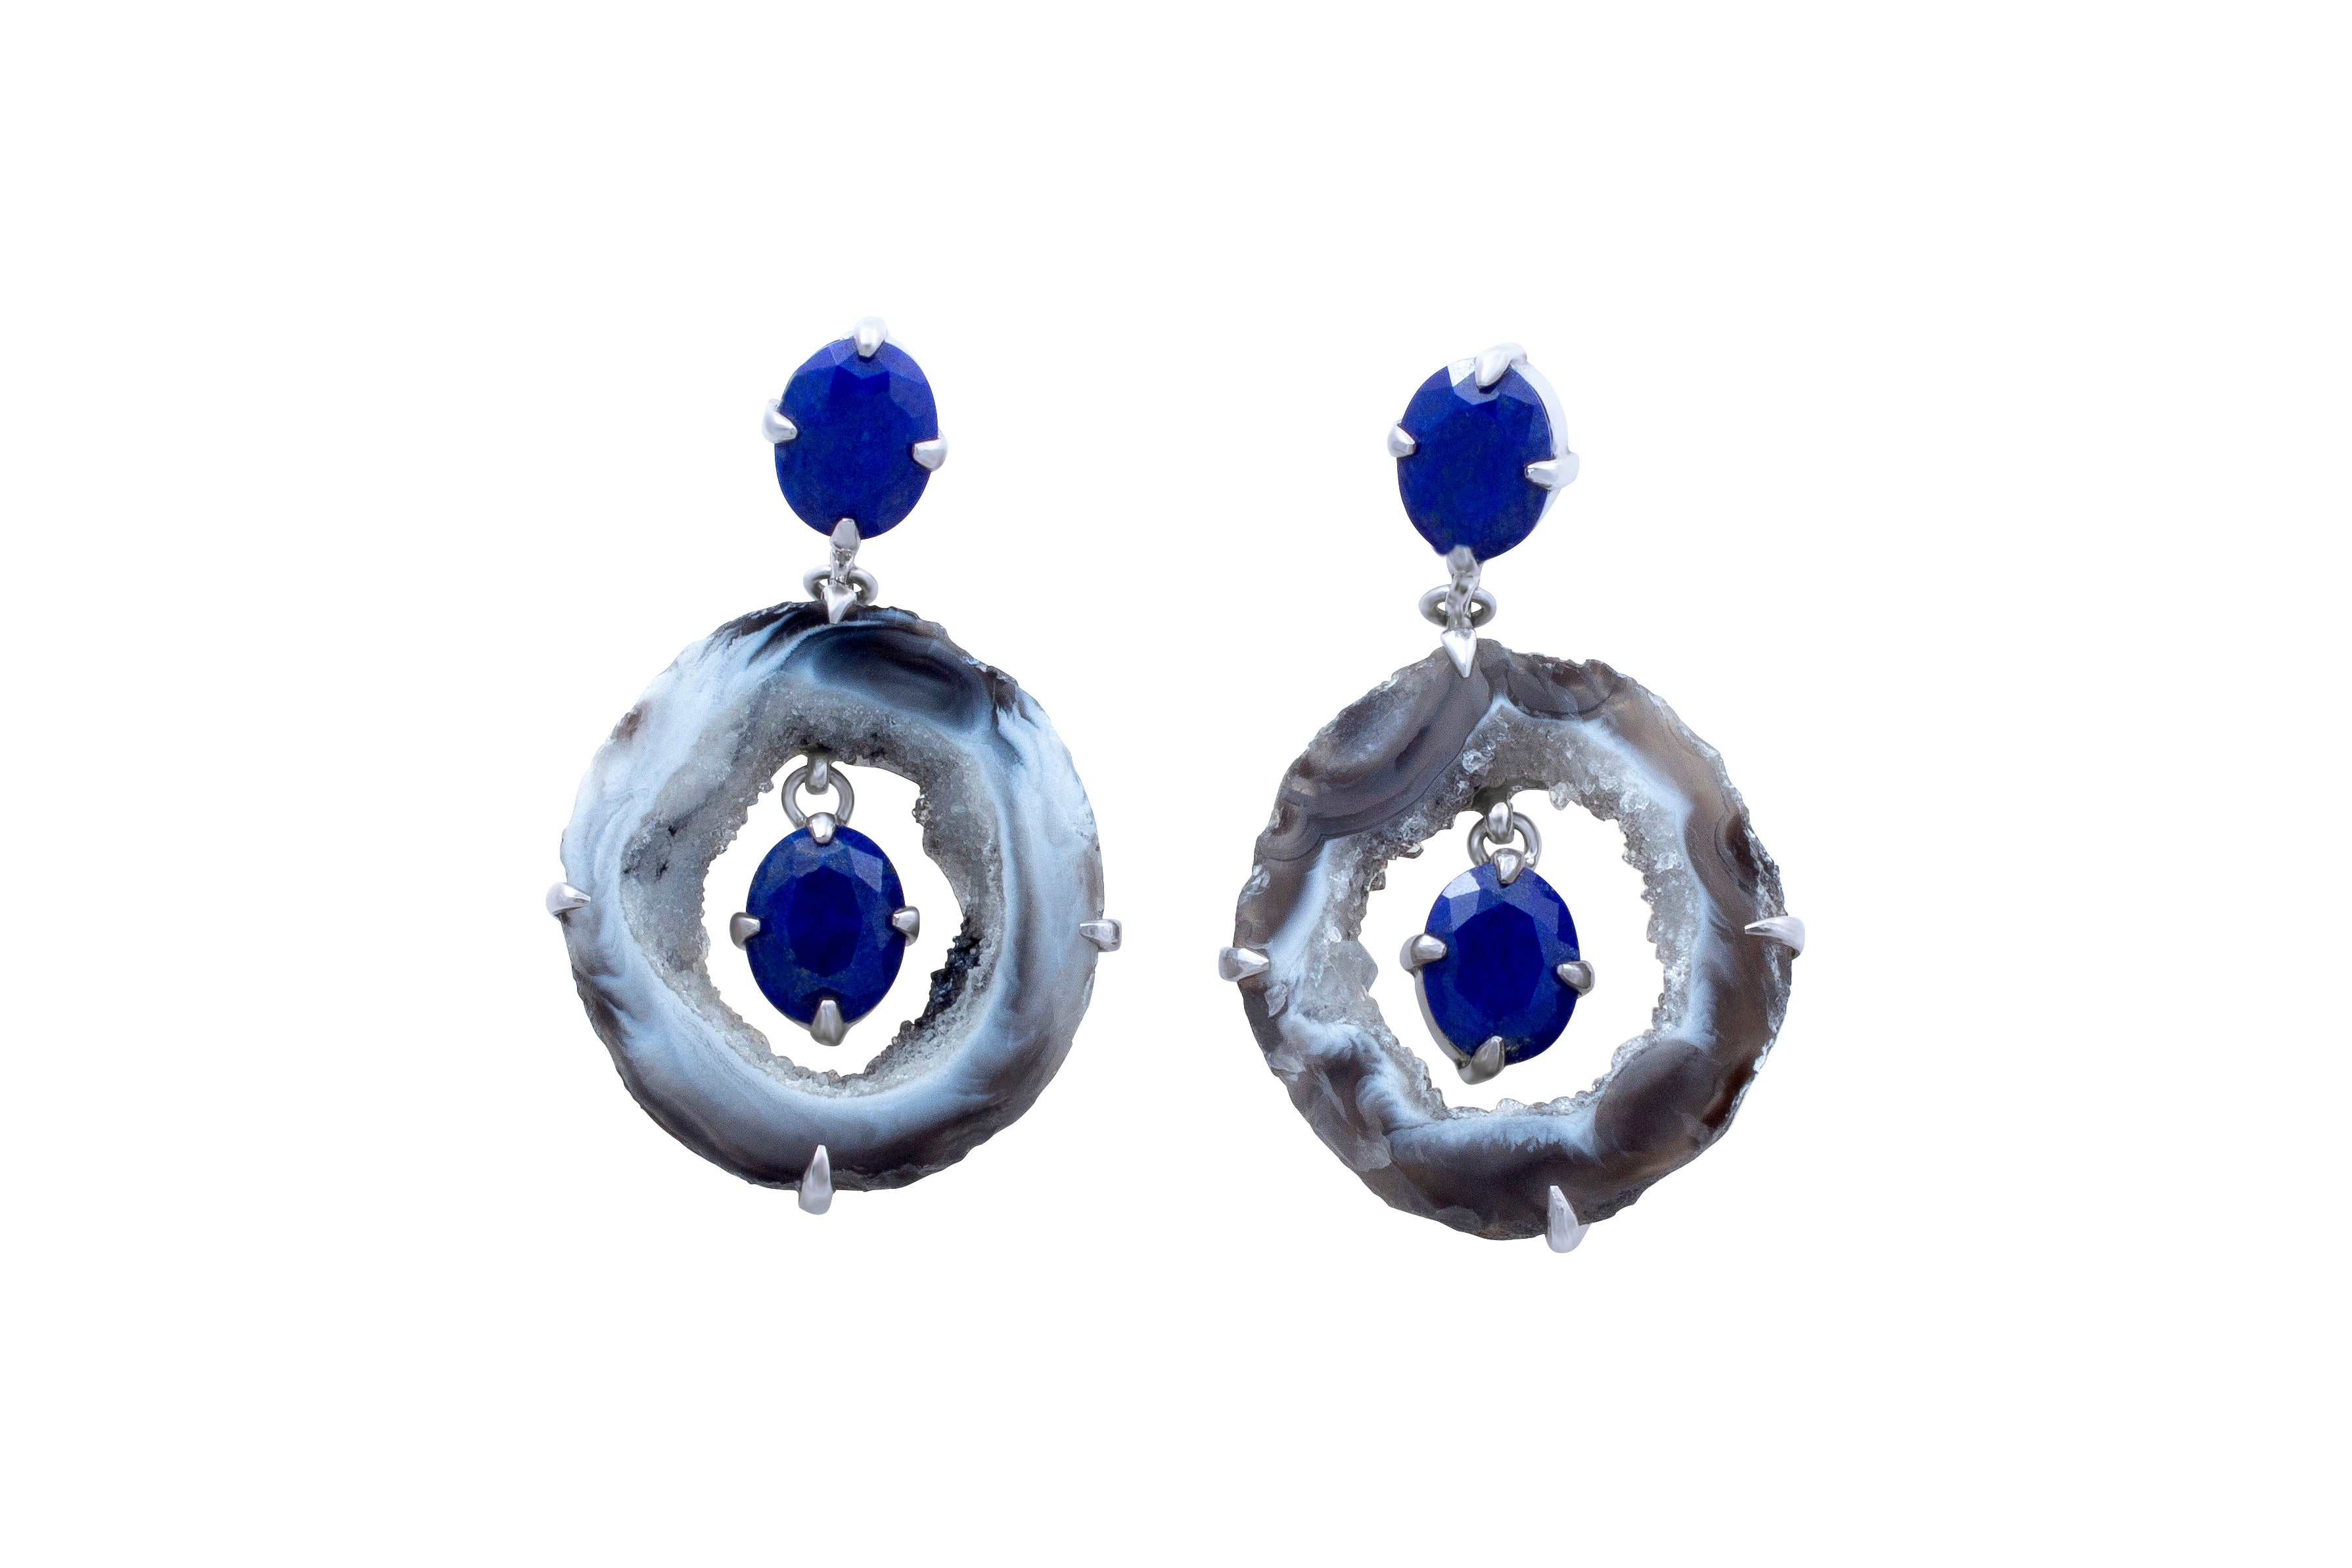 Geode & Lapis Lazuli Earrings - Joy